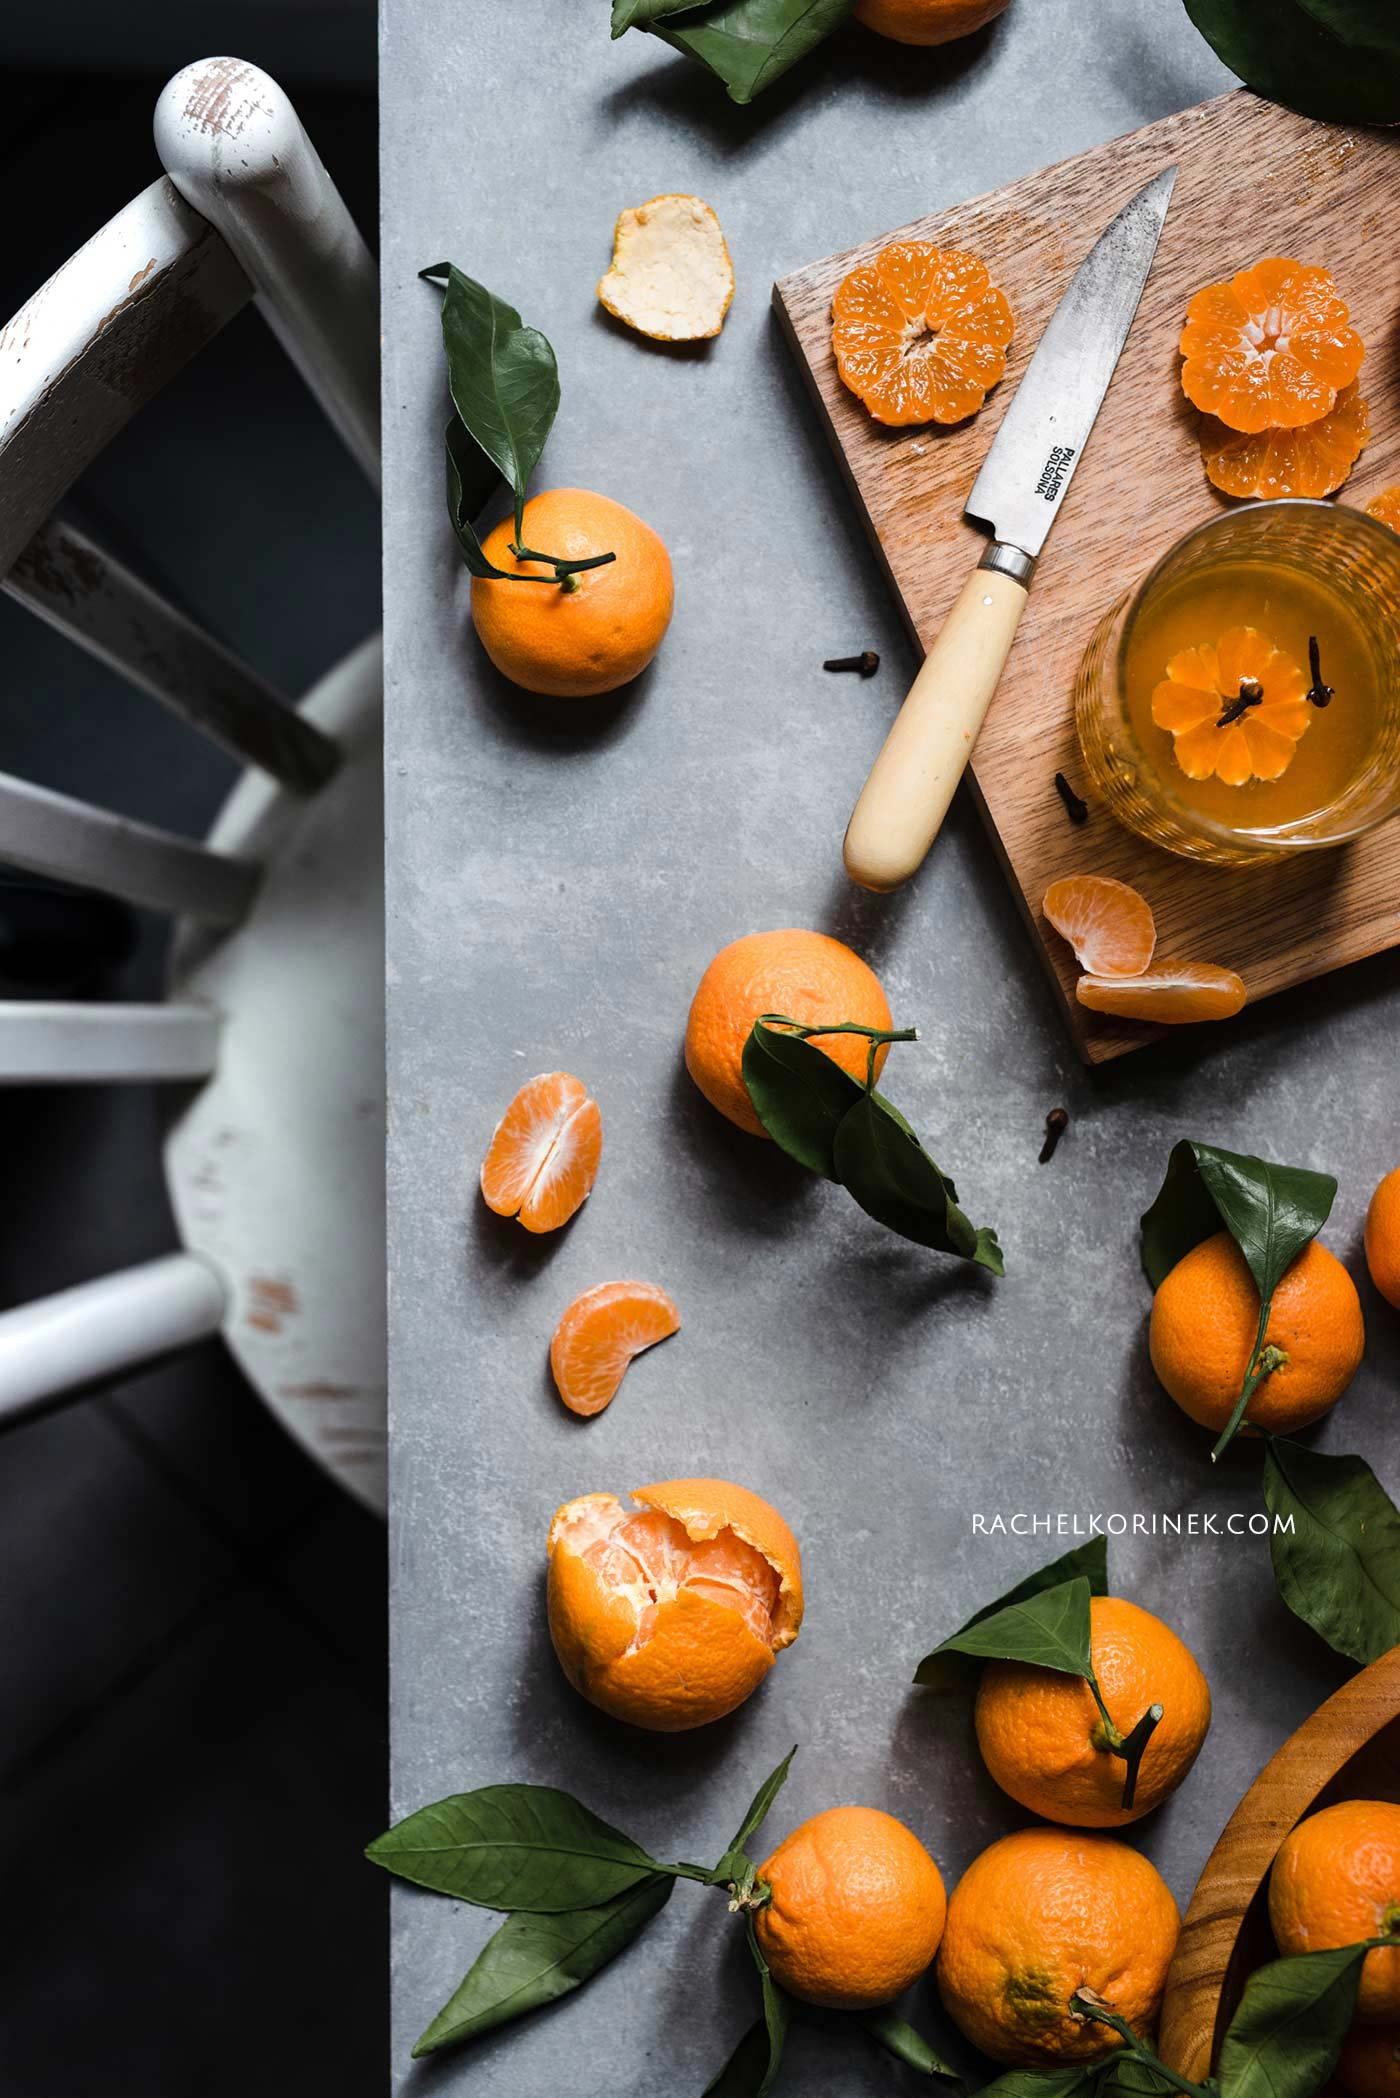 A table full of clementines, some cut up and a knife on the table.